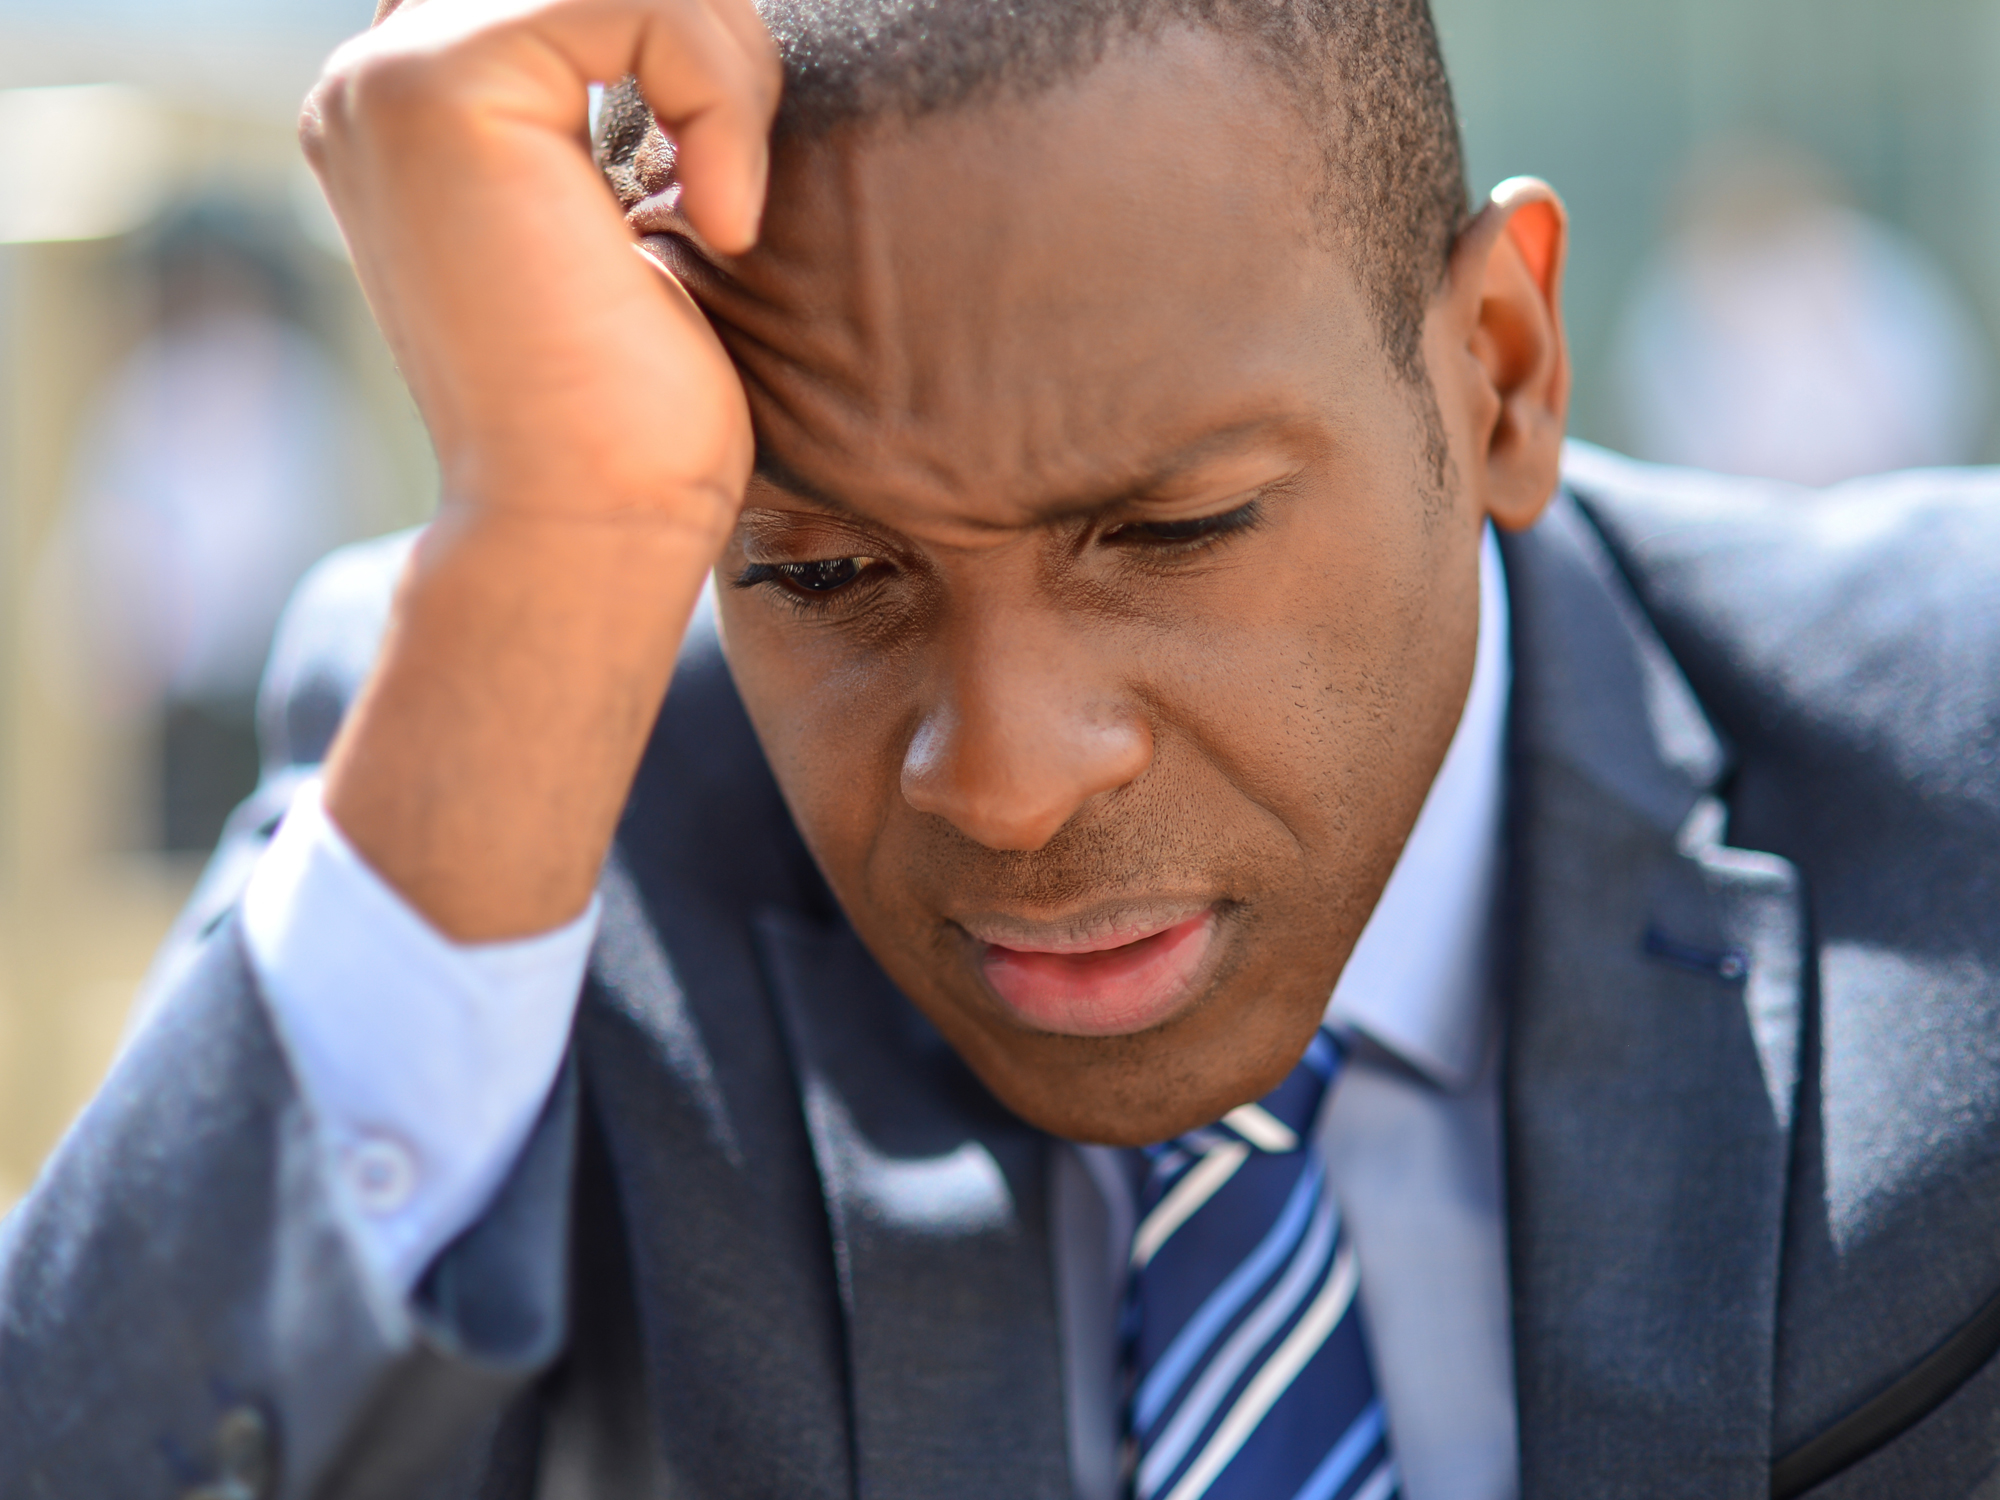 Why is anxiety giving men cancer  Easy Health Options